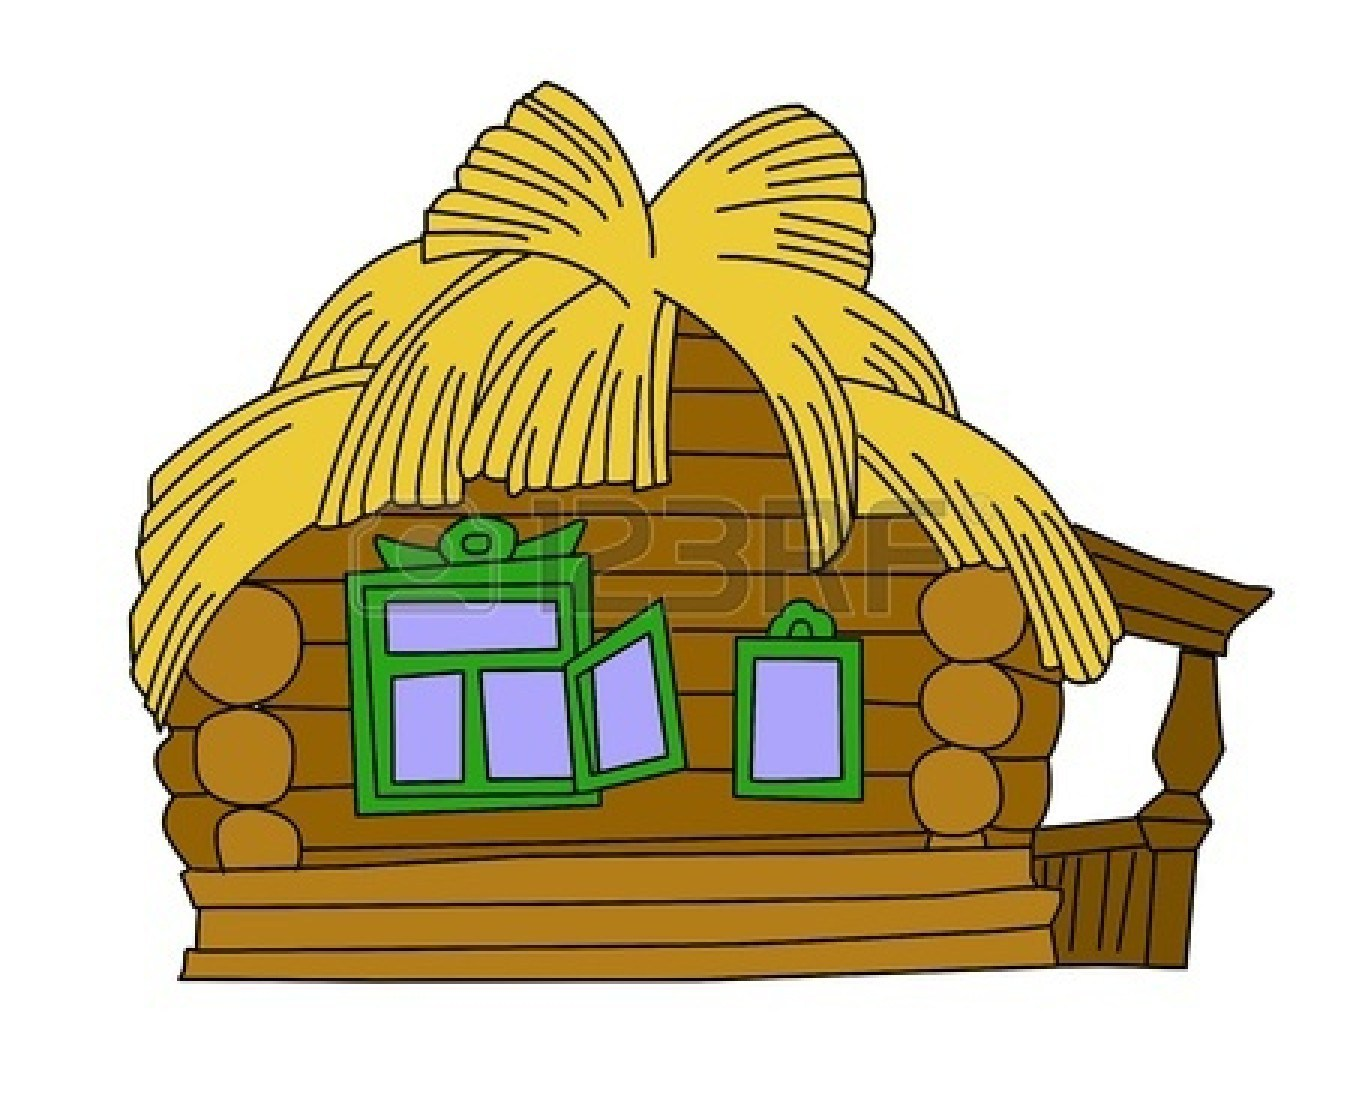 Straw house clipart » Clipart Portal.